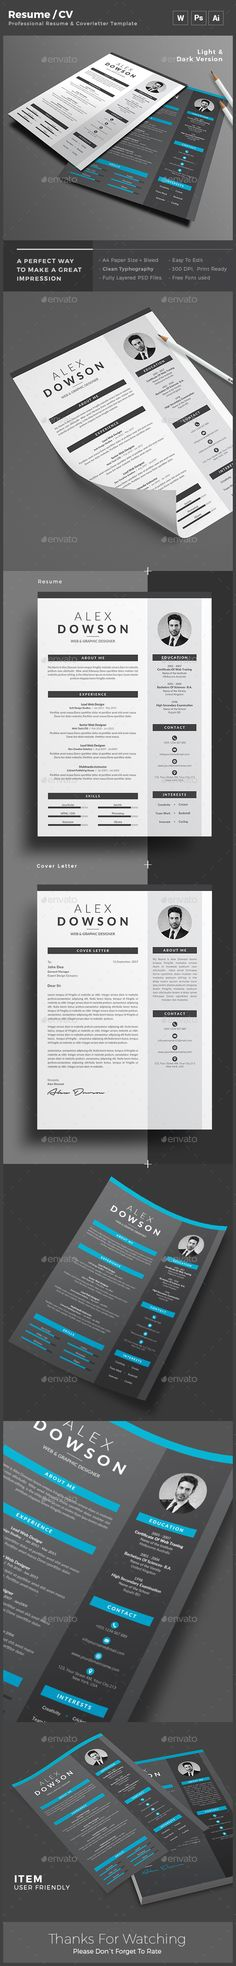 Resume Template PSD, AI Illustrator, MS WWord. Download here: http://graphicriver.net/item/resume/16847059?ref=ksioks